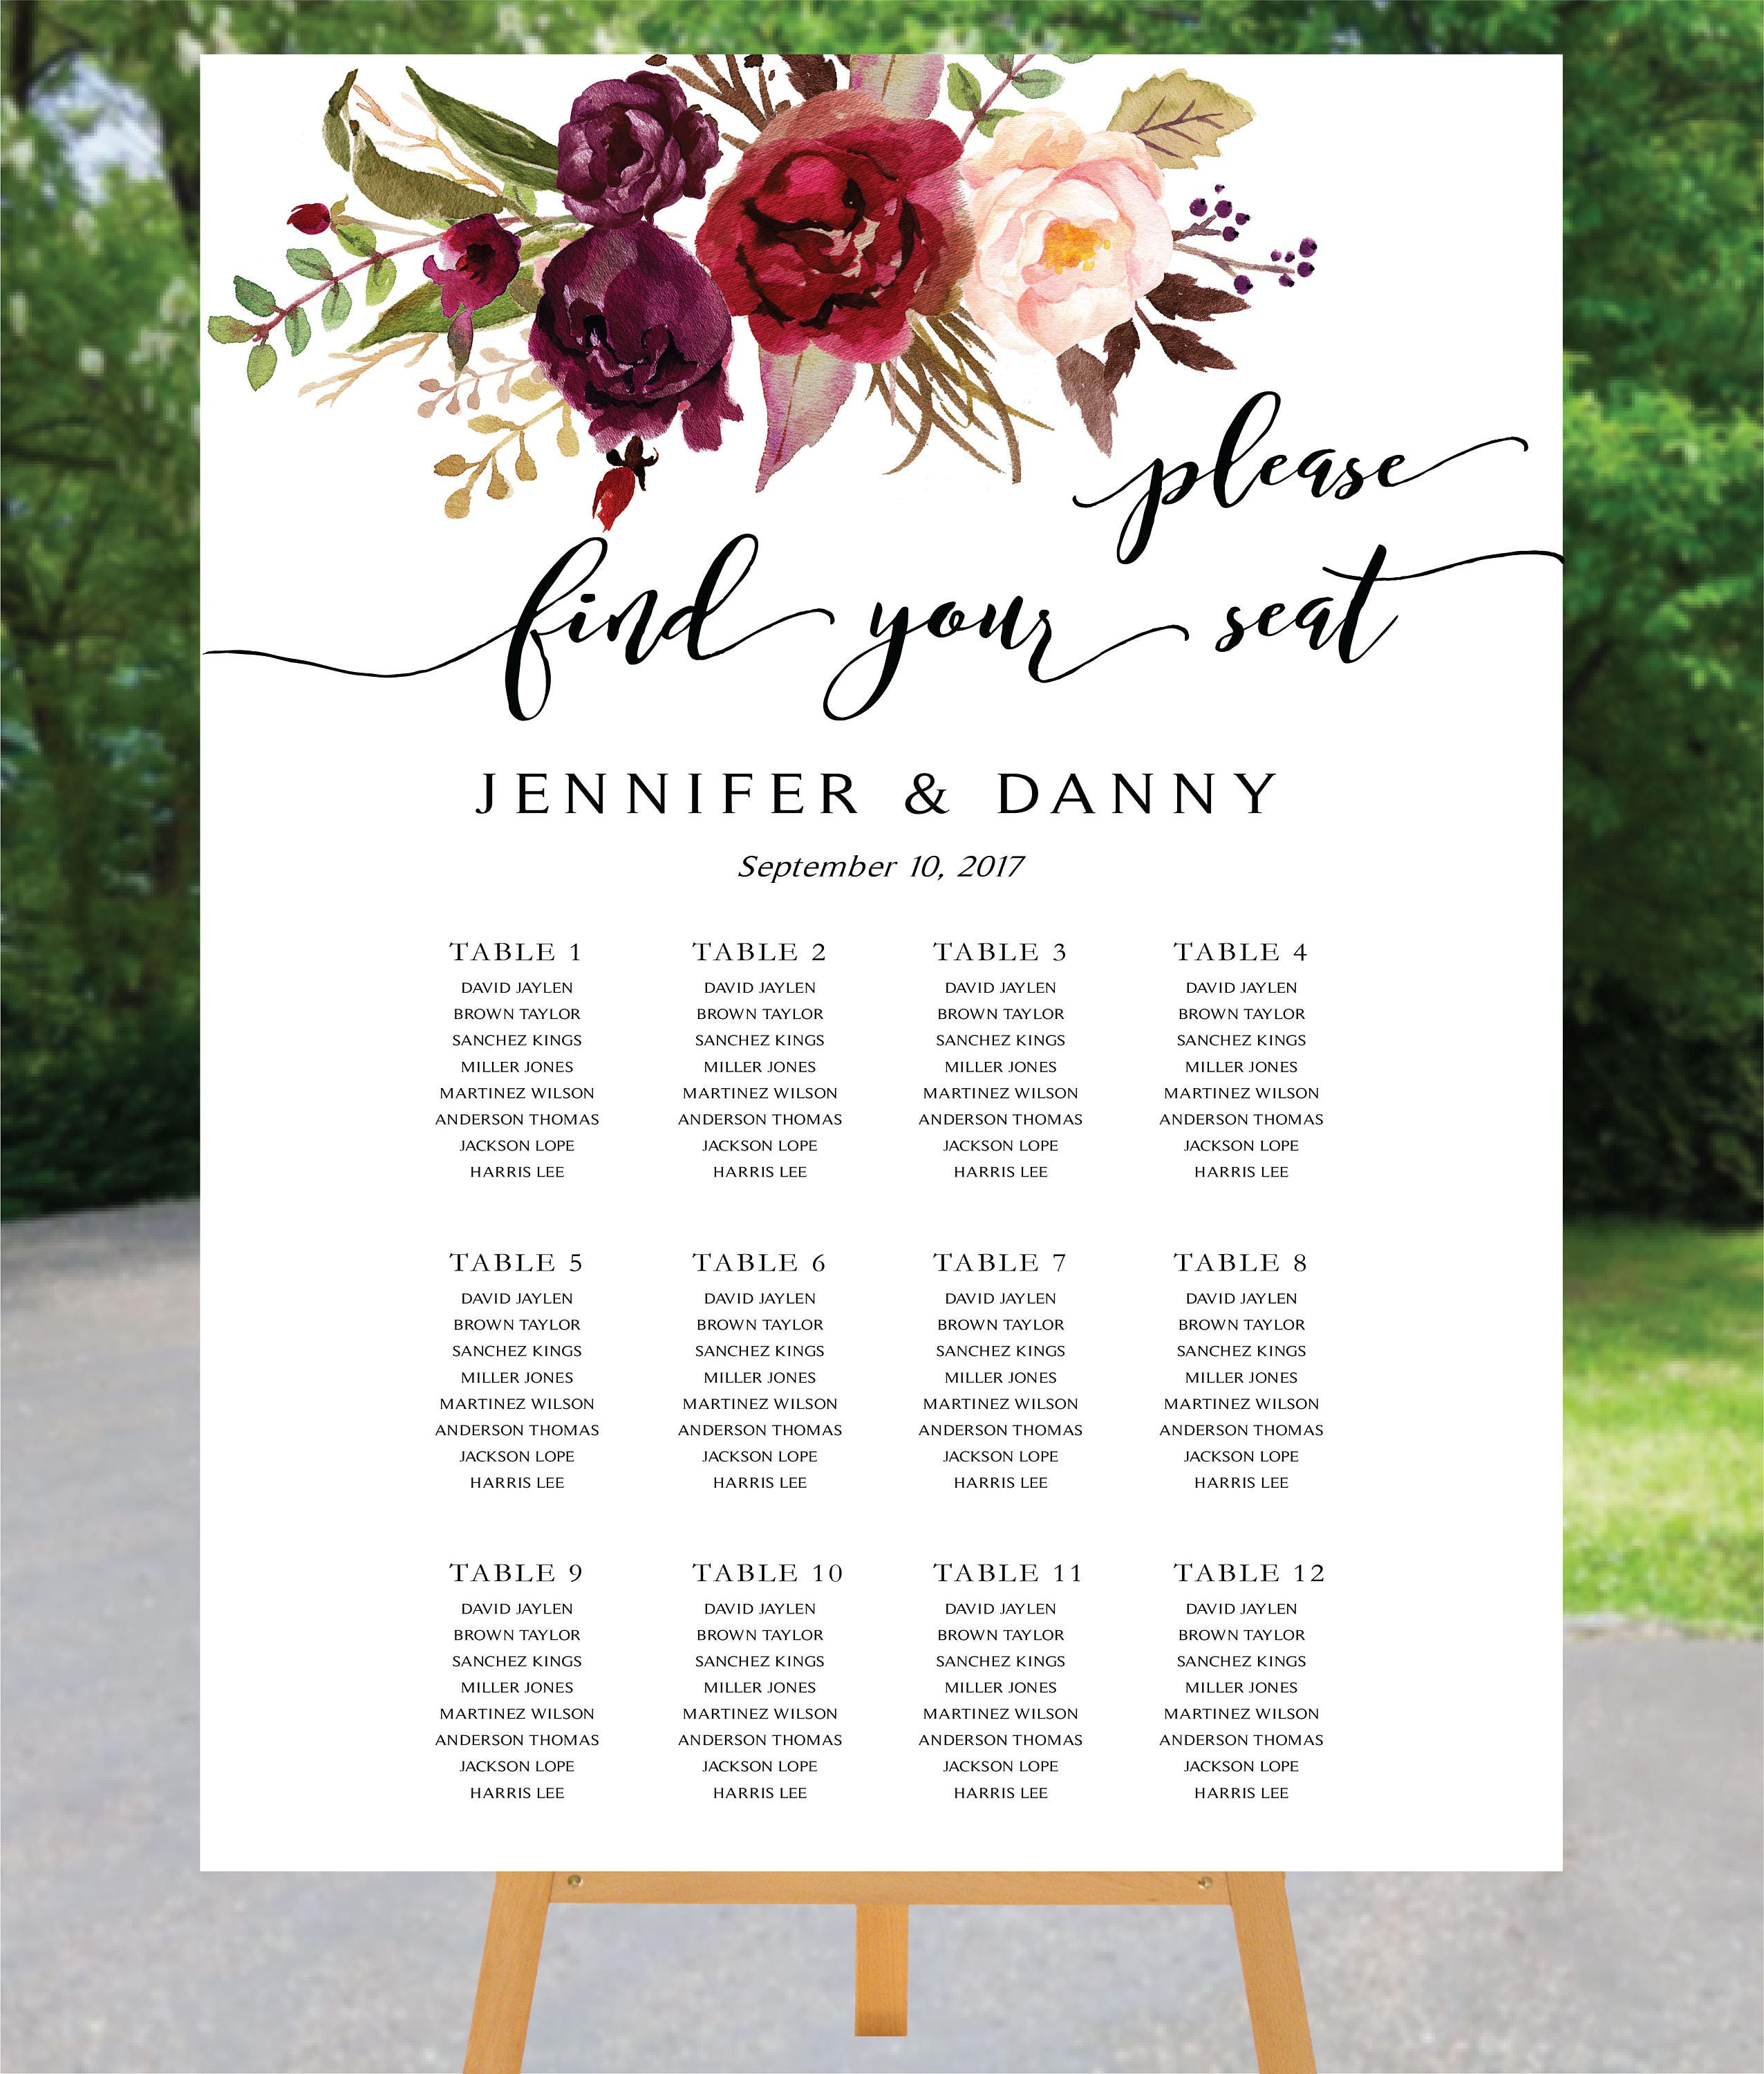 Printable Seating Chart For Wedding Reception: Printable Wedding Seating Chart Poster Wedding Seating Chart